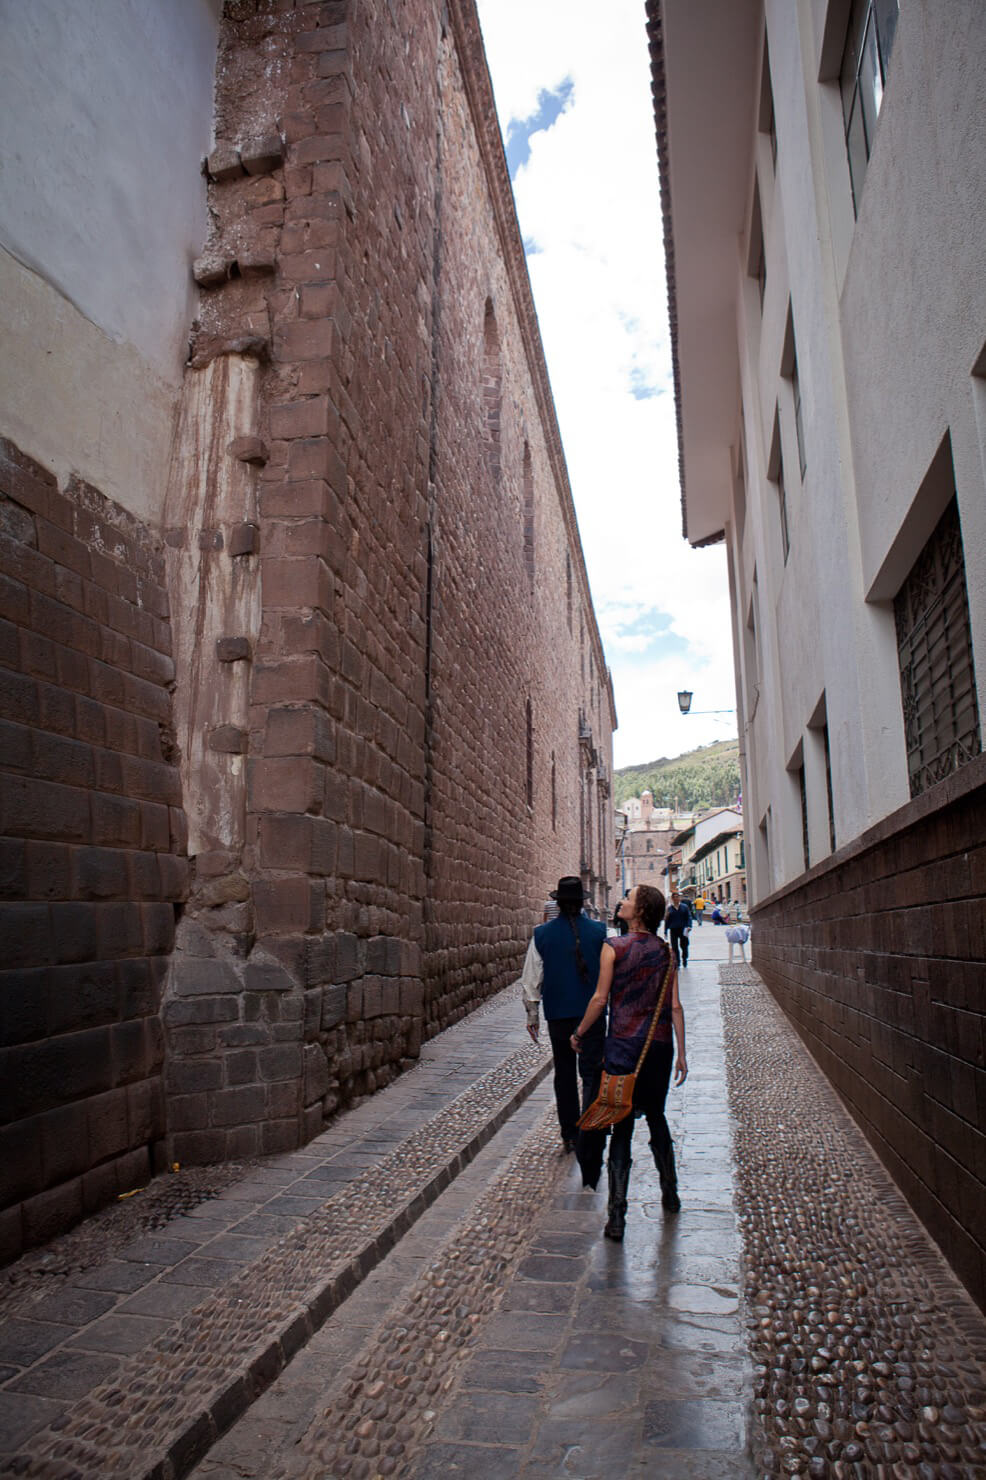 The Streets of Cusco